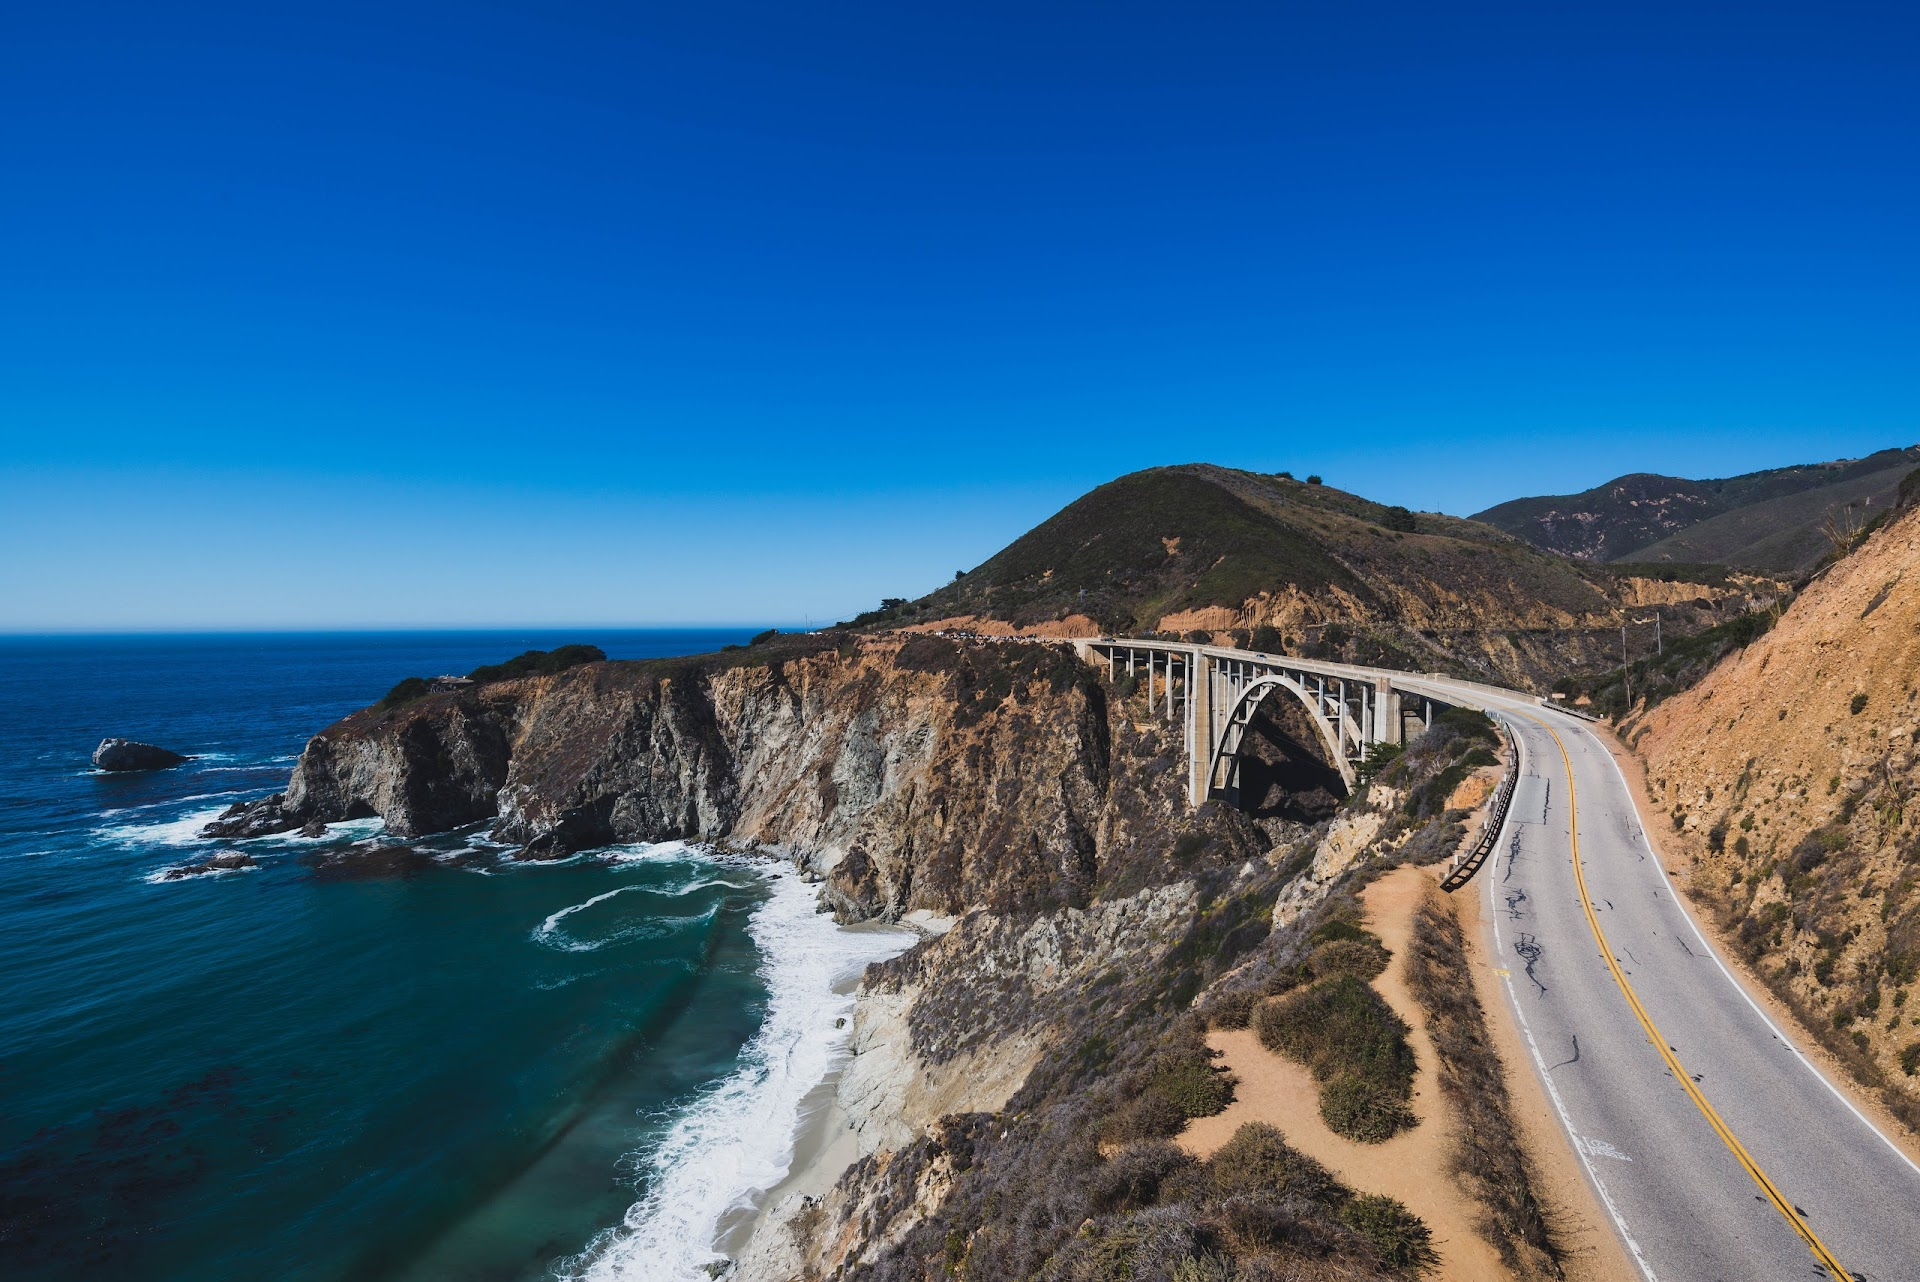 Bixby bridge, where to get the best photo of bixy bridge, big sur, travel blog, california, central coast, monterey county, see monterey, travel info, photography, landscape, daytime, scenic, big sur